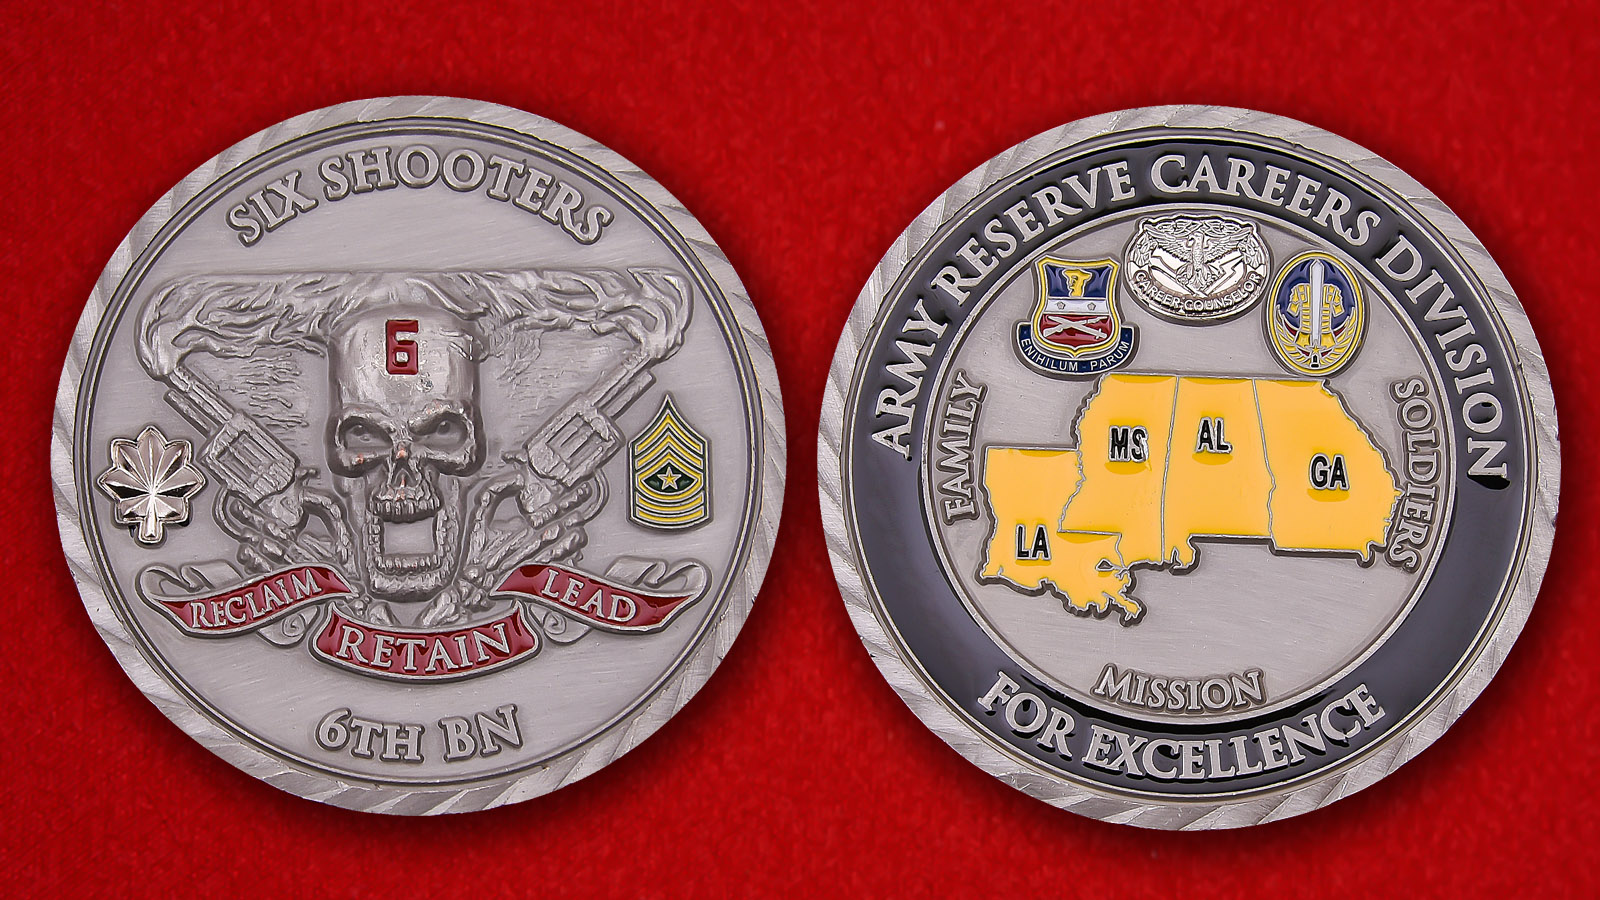 US Army 6th Battalion Army Reserve Careers Division Challenge Coin